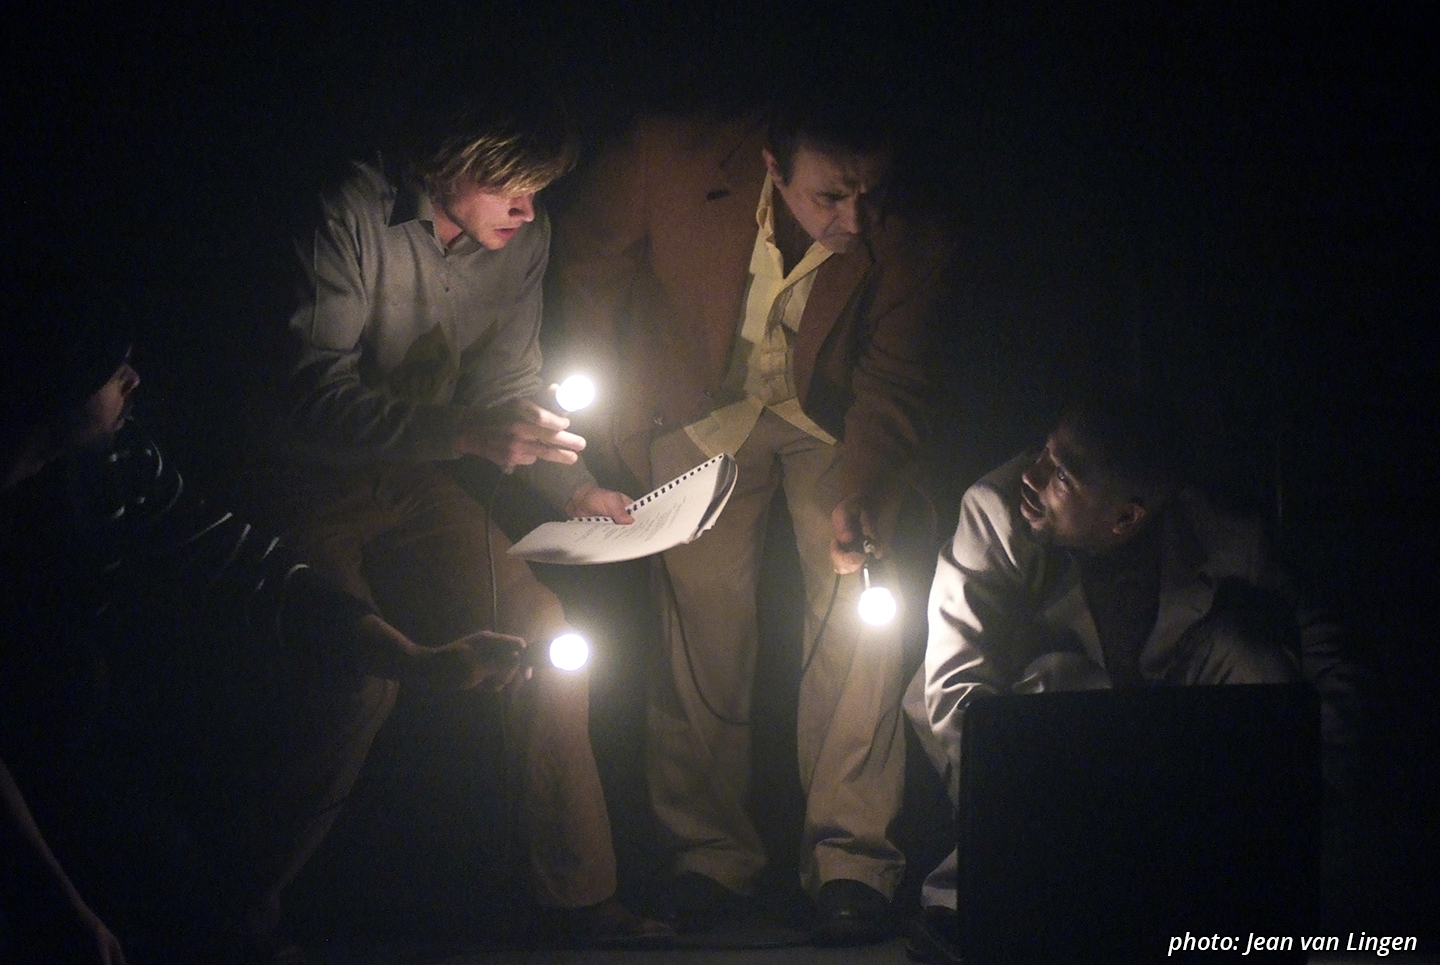 Four characters, all dressed in some form of suit or pants-sweater-combo, beding over an opened suitcase in the right lower corner. Three of them are holding a lightbulb that's attached to a black cord, using it to shine light into the suitcase for the forth character sitting behind and bent over the suitcase.